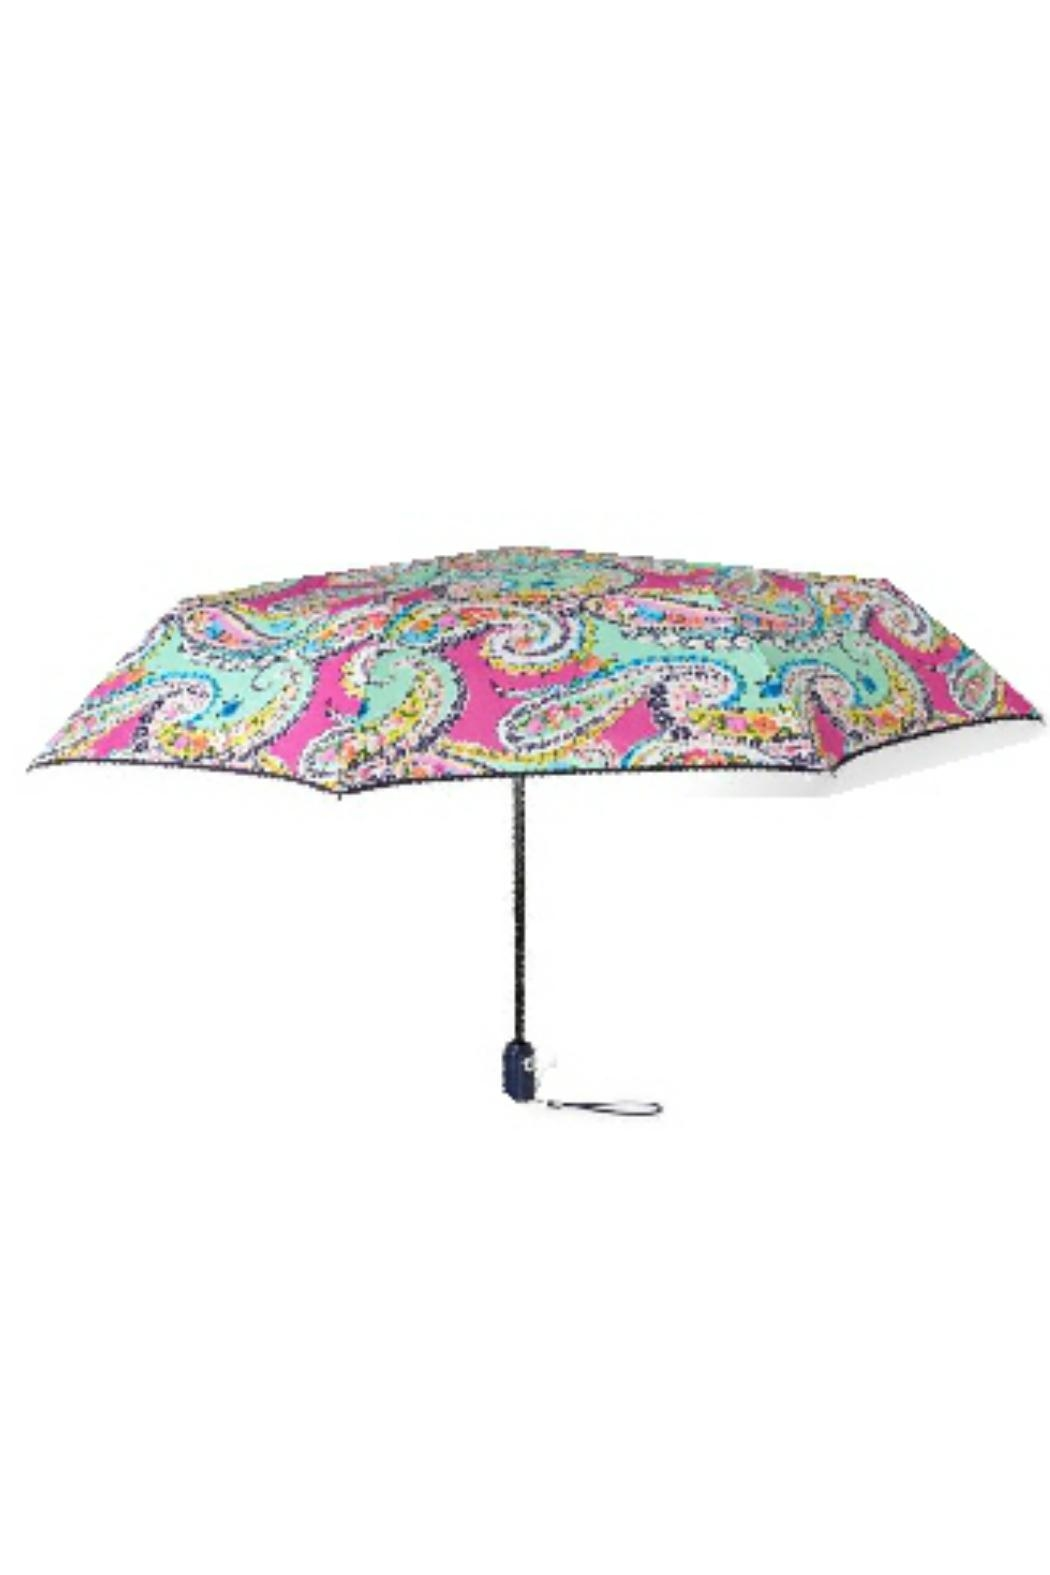 cf88a16eb3 Vera Bradley Wildflower Paisley Umbrella from Kentucky by Mimi s ...